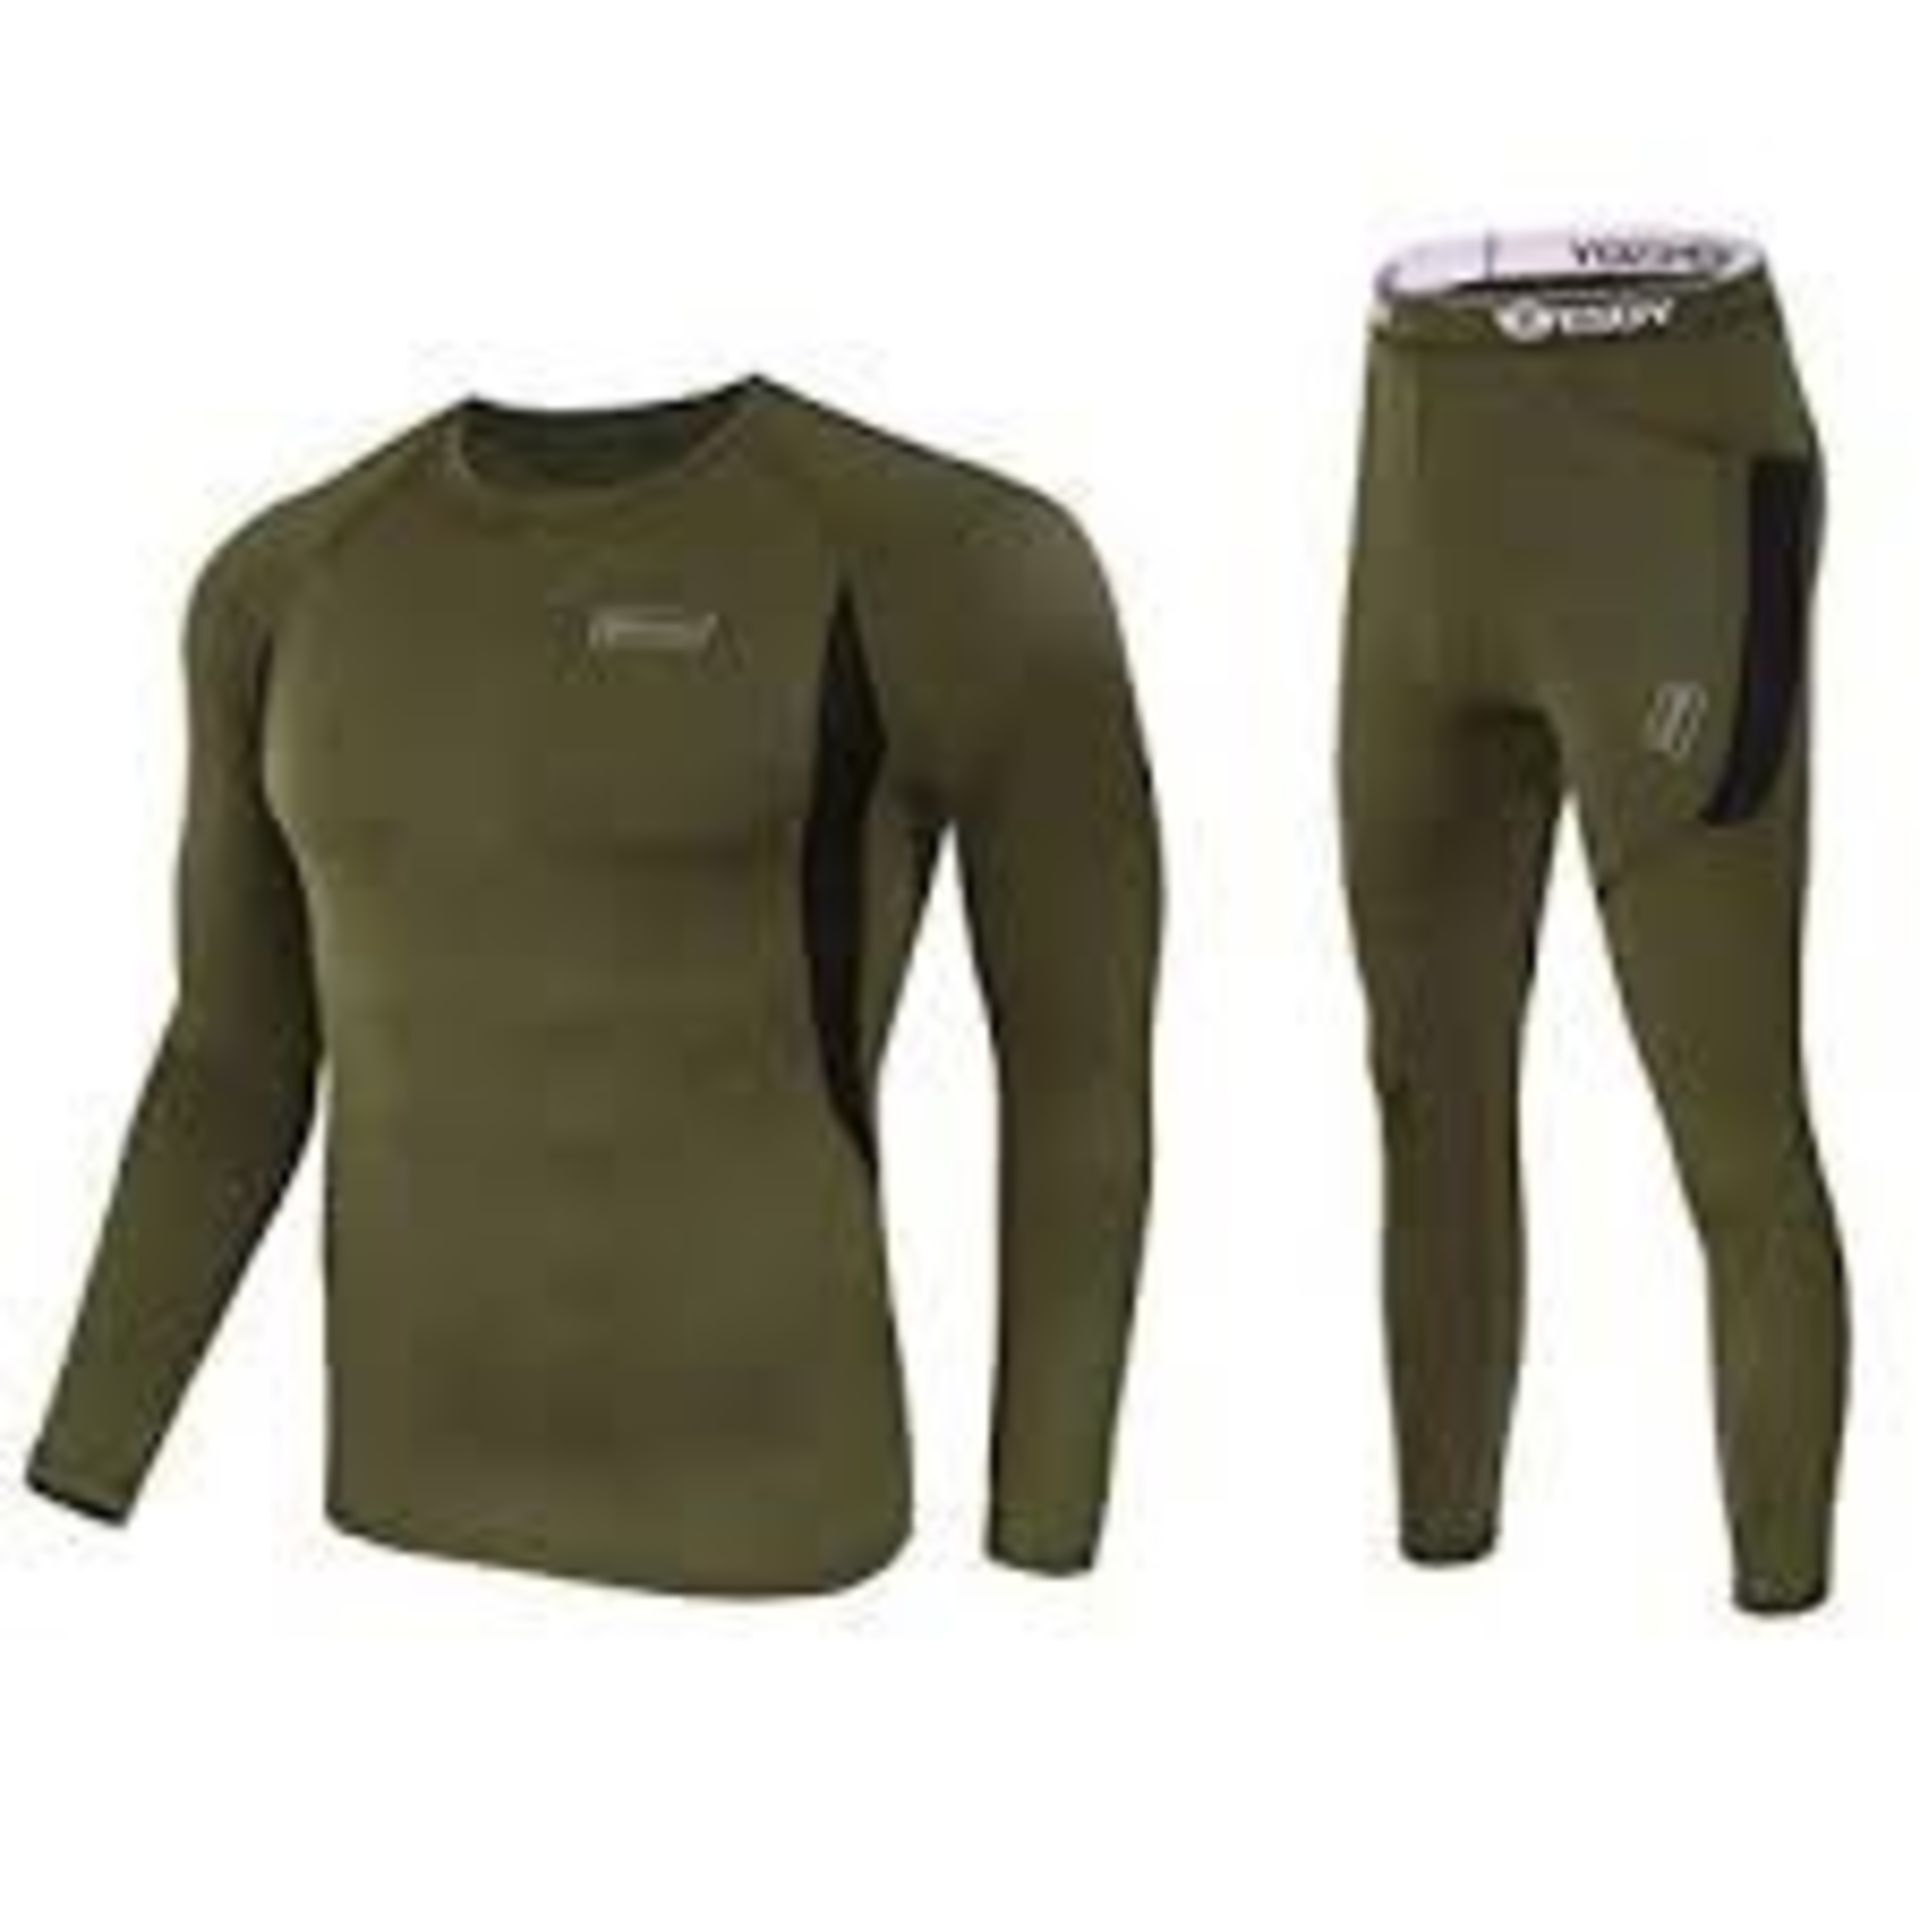 Lot 905 - Brand New ESDY Black and Khaki Thermal Gents Under Garments